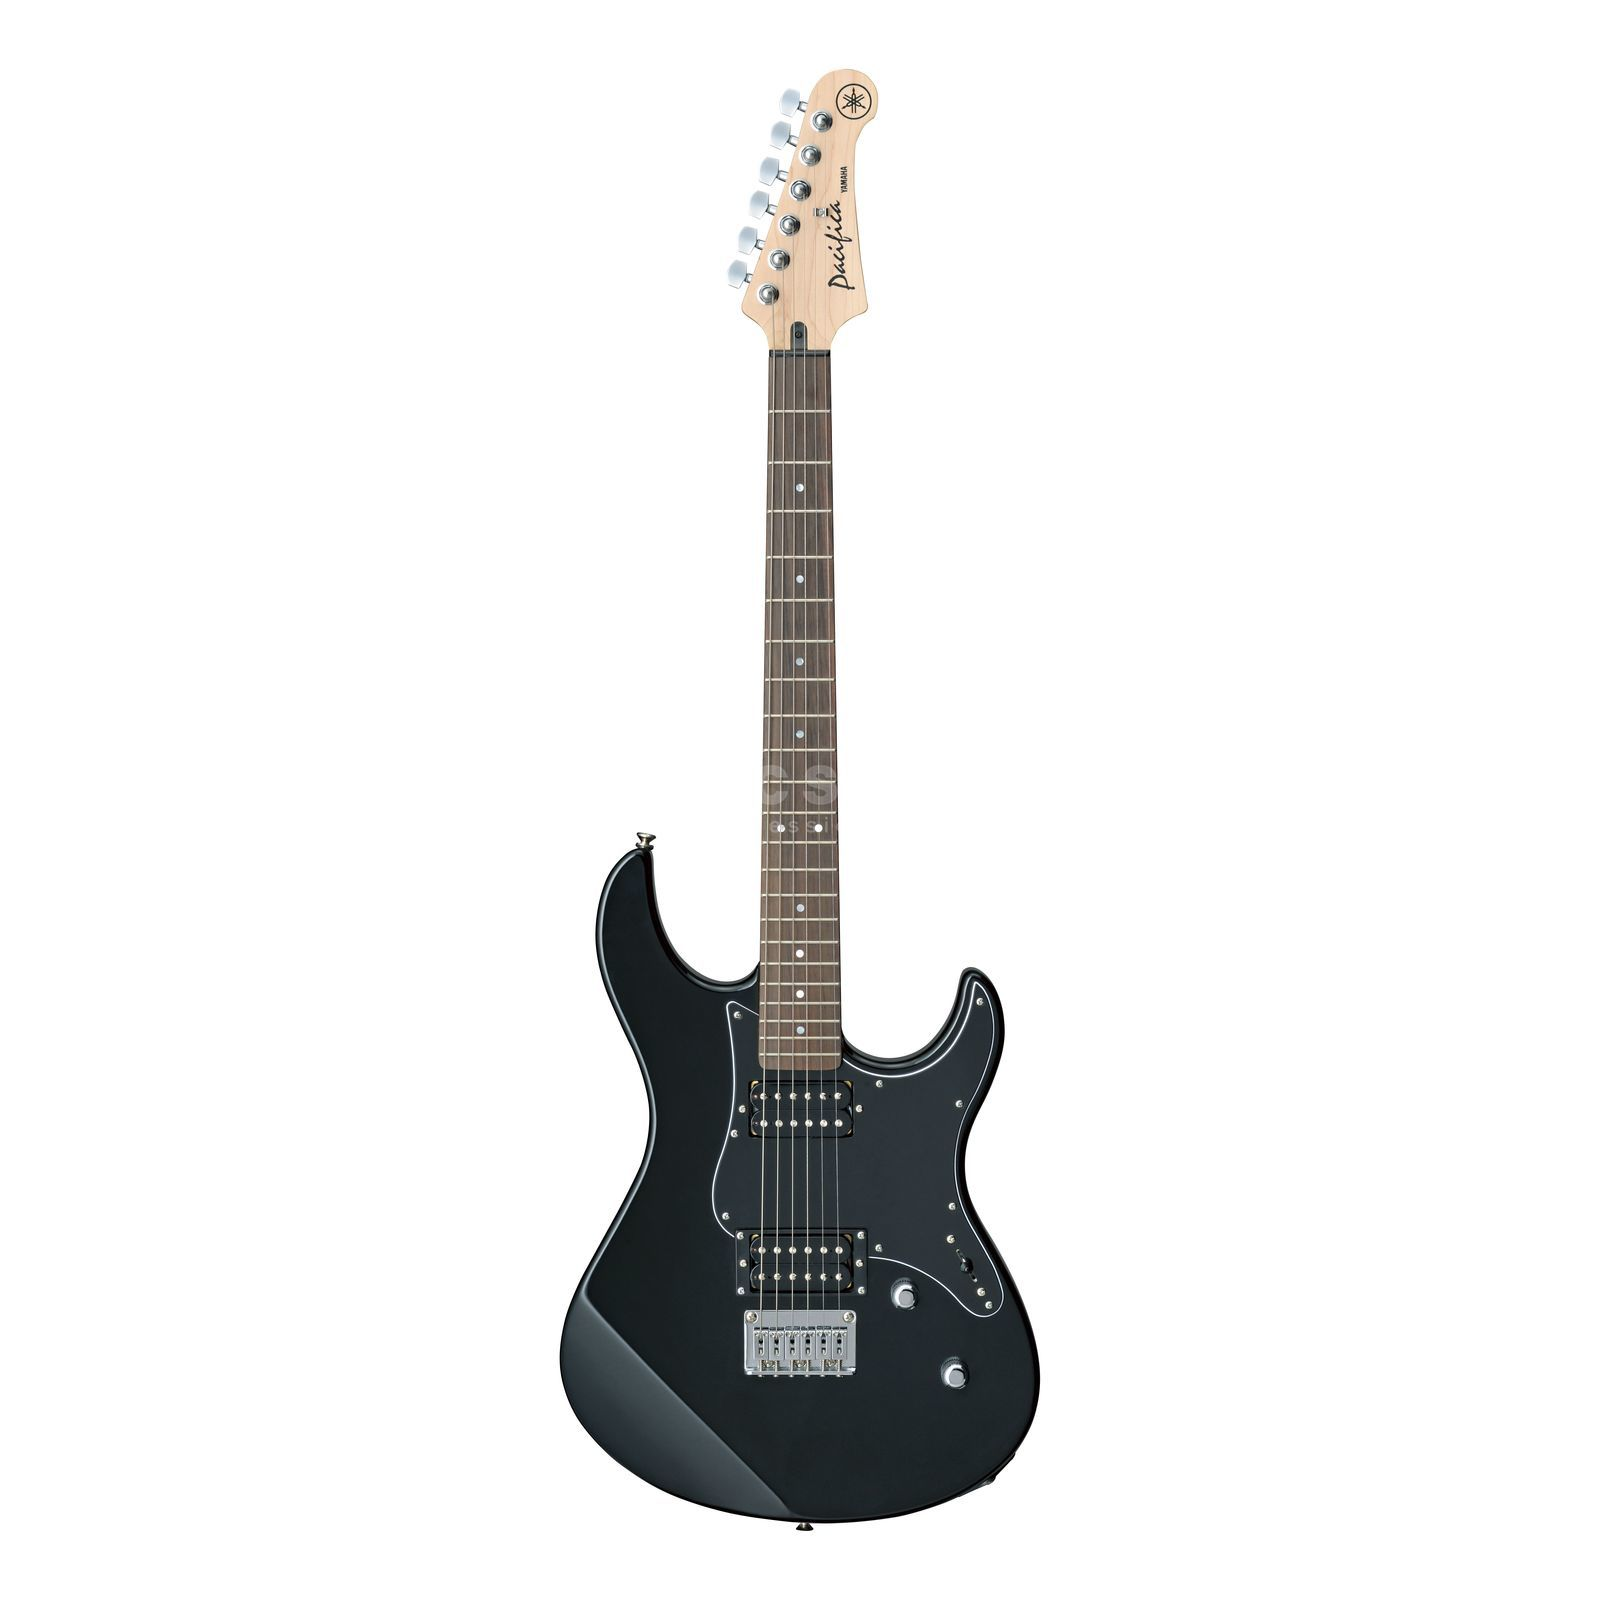 Yamaha PA120H Electric Guitar, Black    Produktbillede